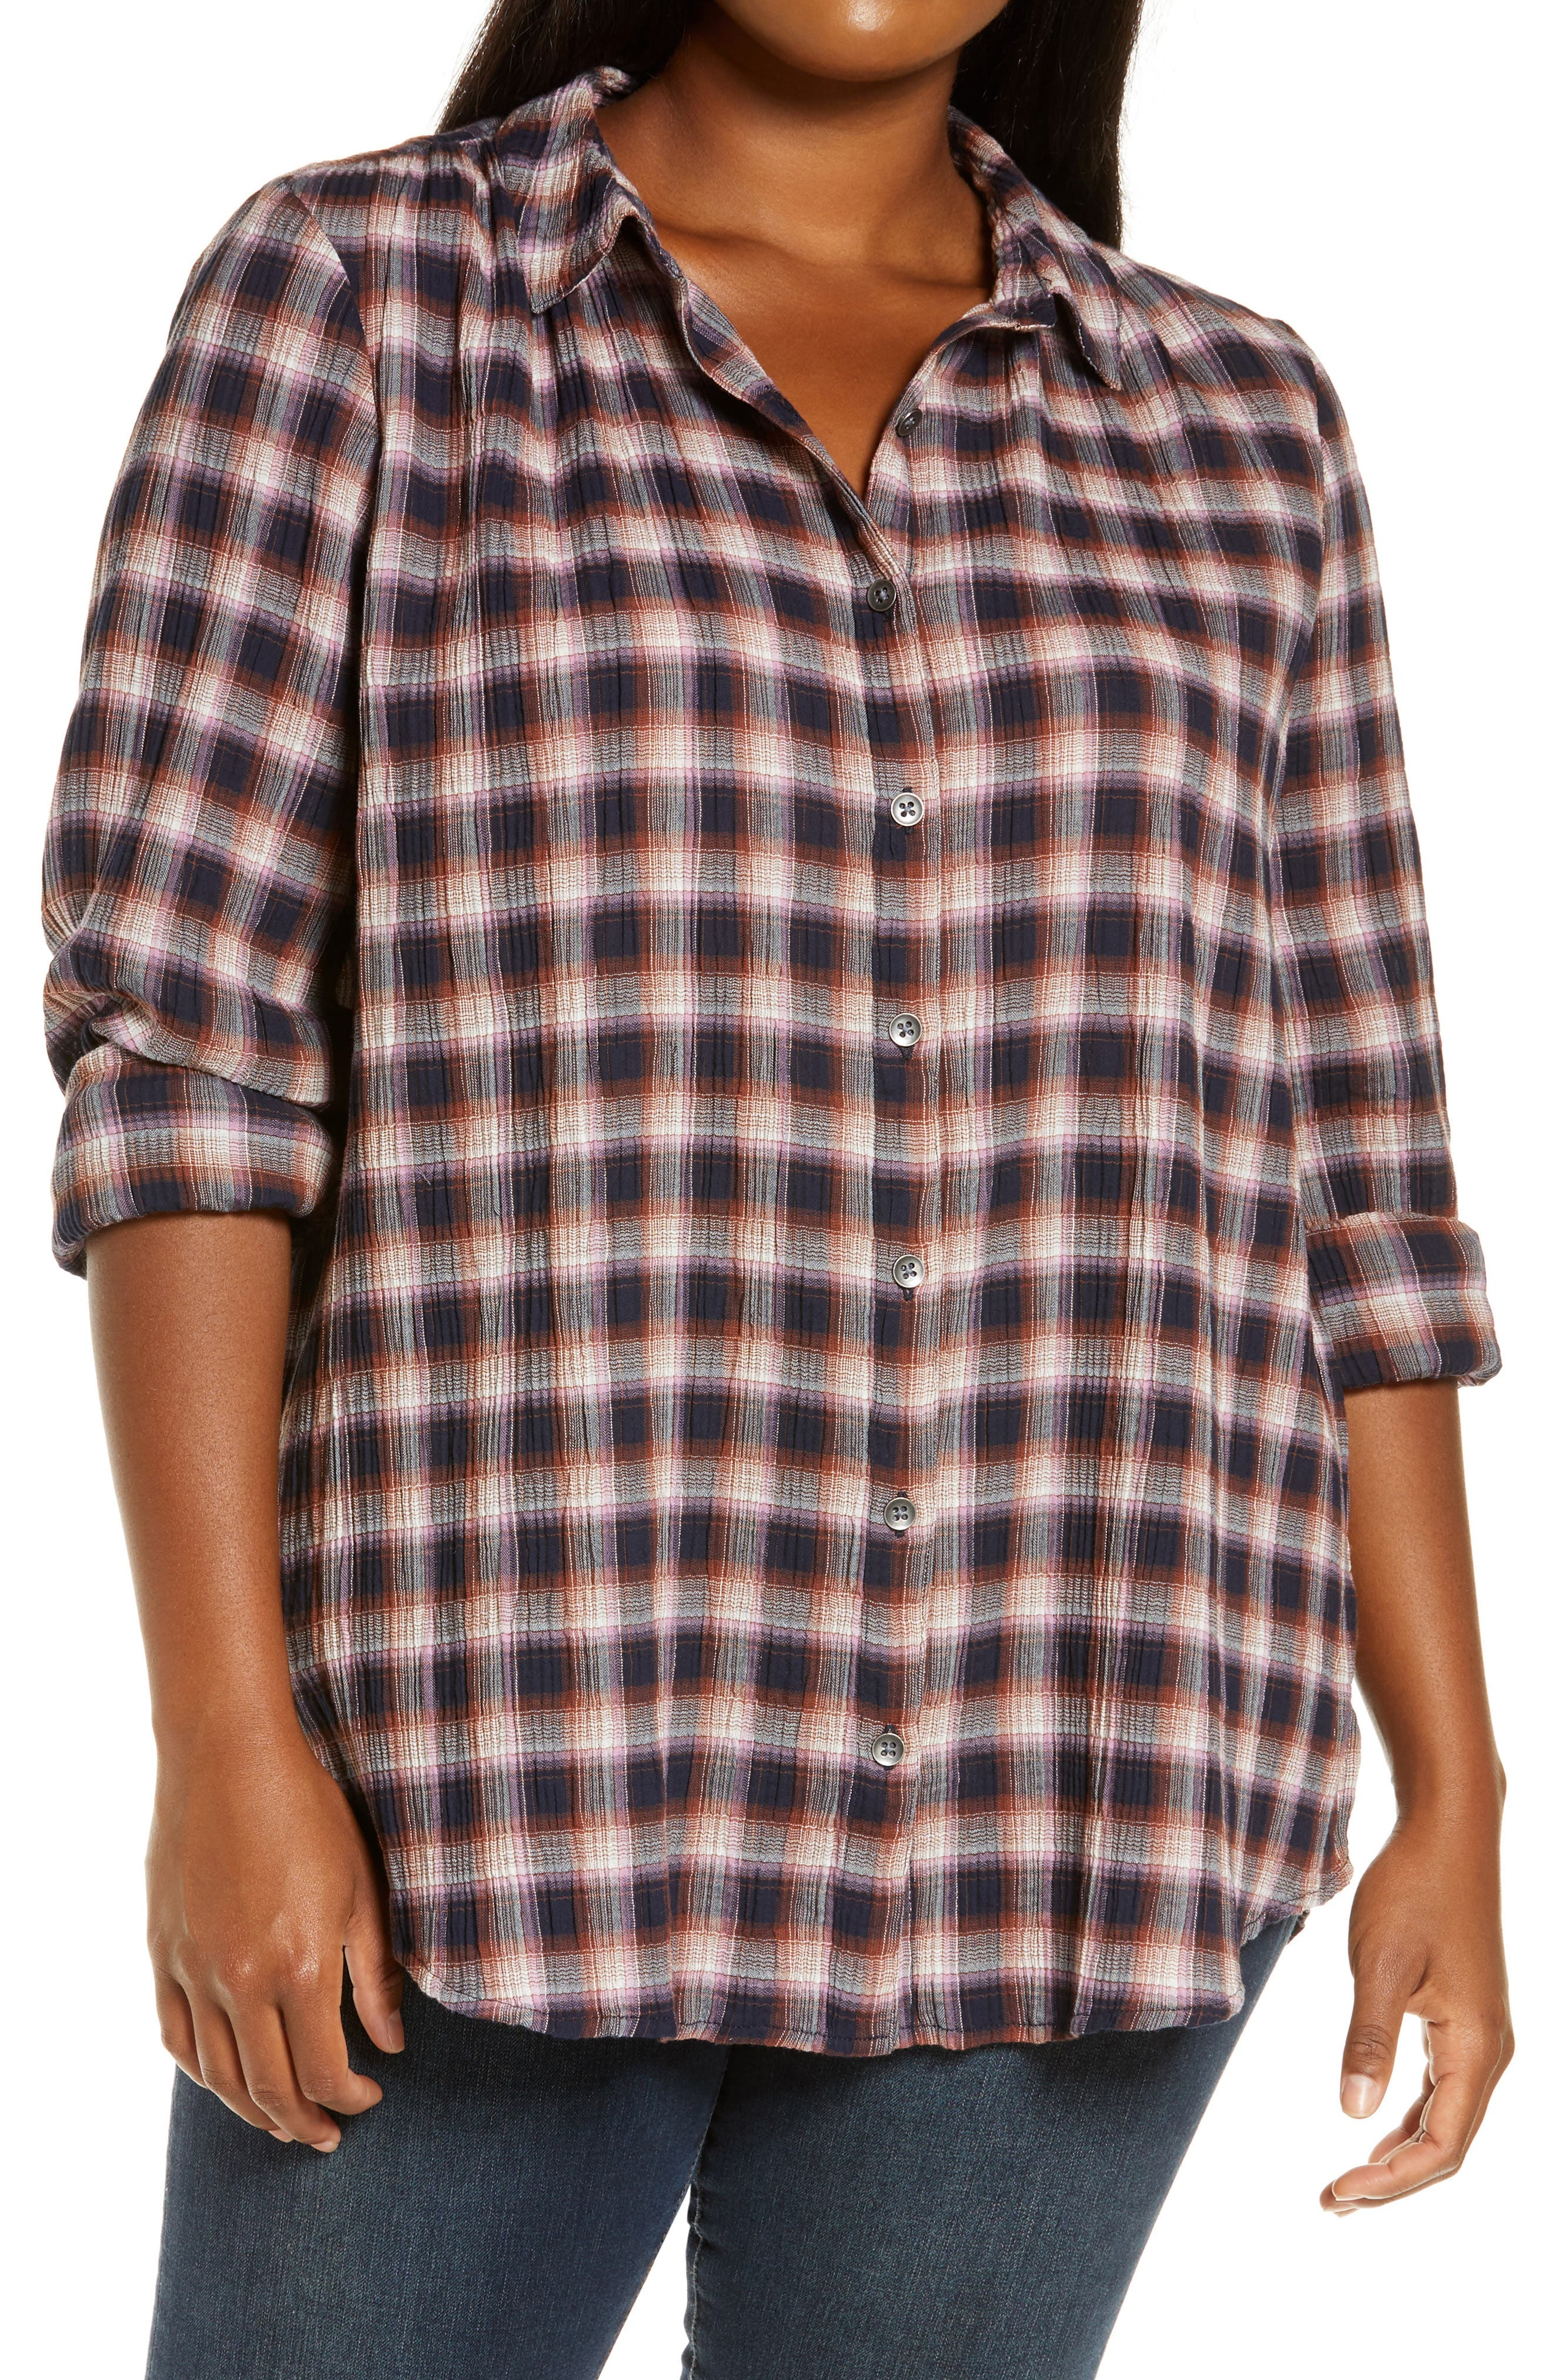 Weekend plaid is perfected in this tunic-length shirt of soft twill with a cozy crimped texture. Style Name: Caslon Plaid Tunic Shirt (Plus Size). Style Number: 5622283. Available in stores.